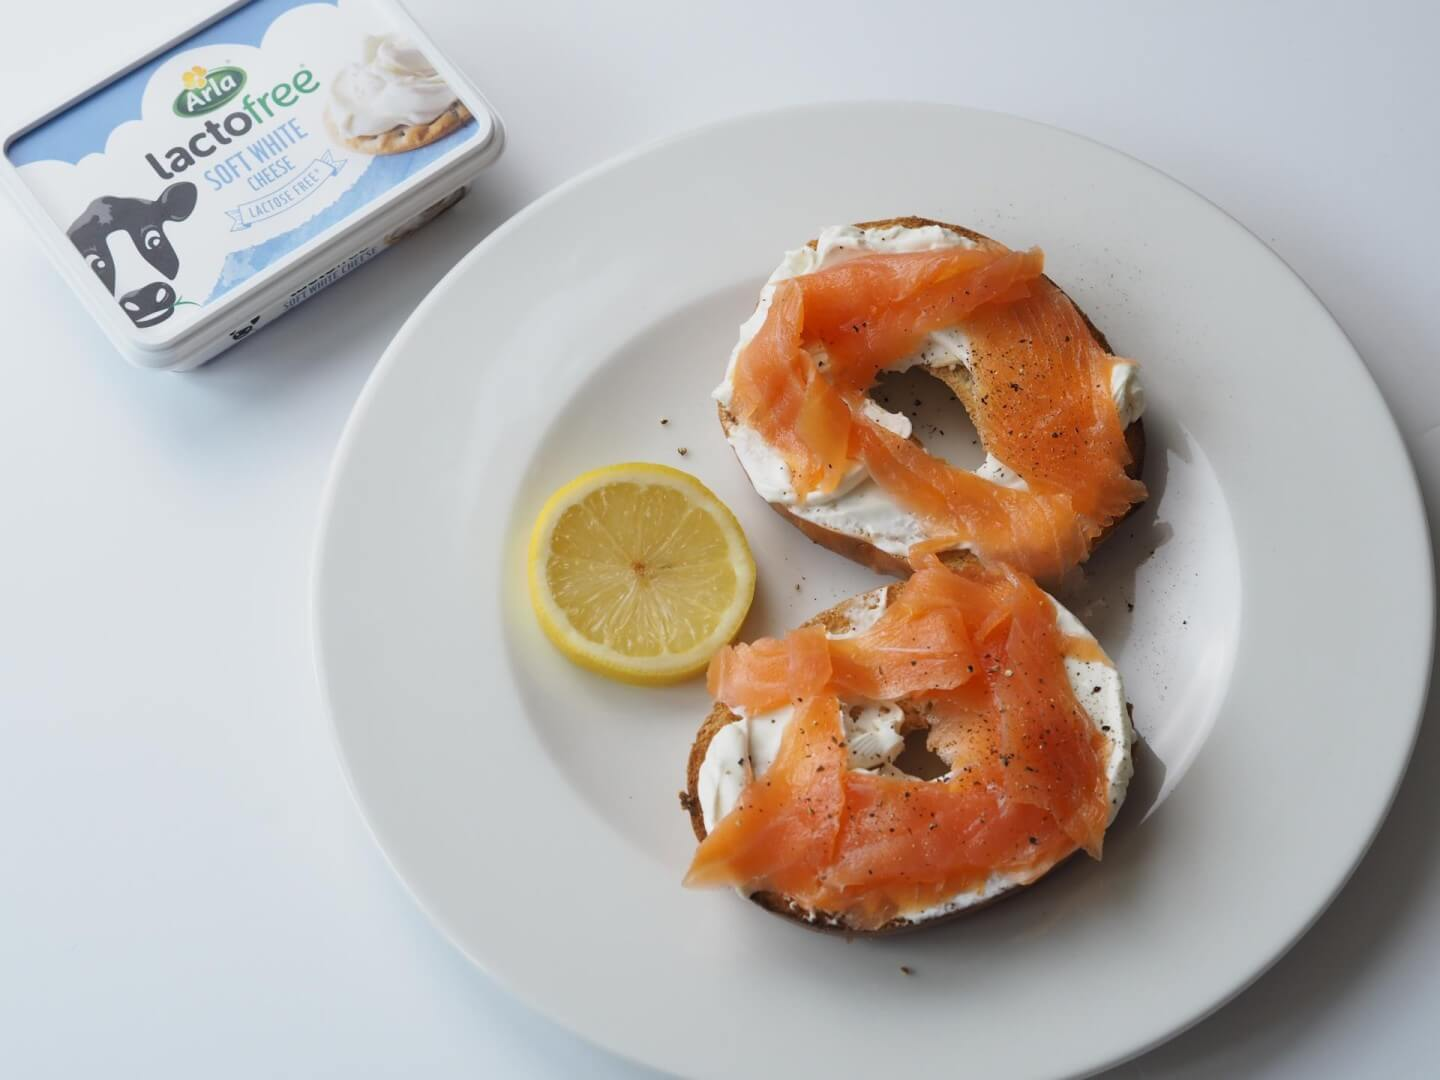 Arla Choose Goodness: Salmon & Cream Cheese Bagel - by lauren jane